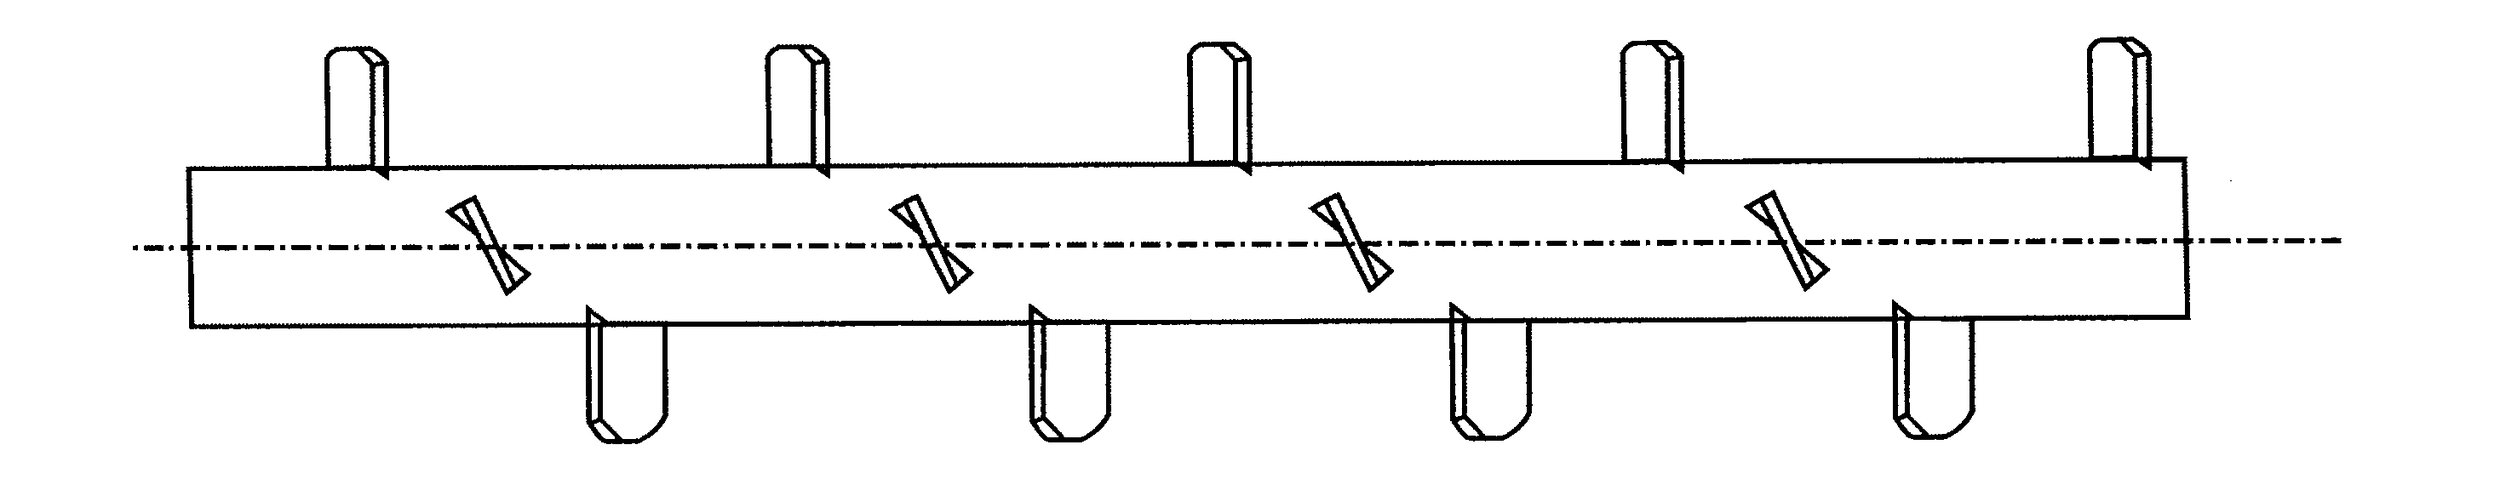 Screw Conveyor - Paddle Screw  Suitable for transportation of materials that need to be mixed before reaching its destination, as well as transportation from material hoppers